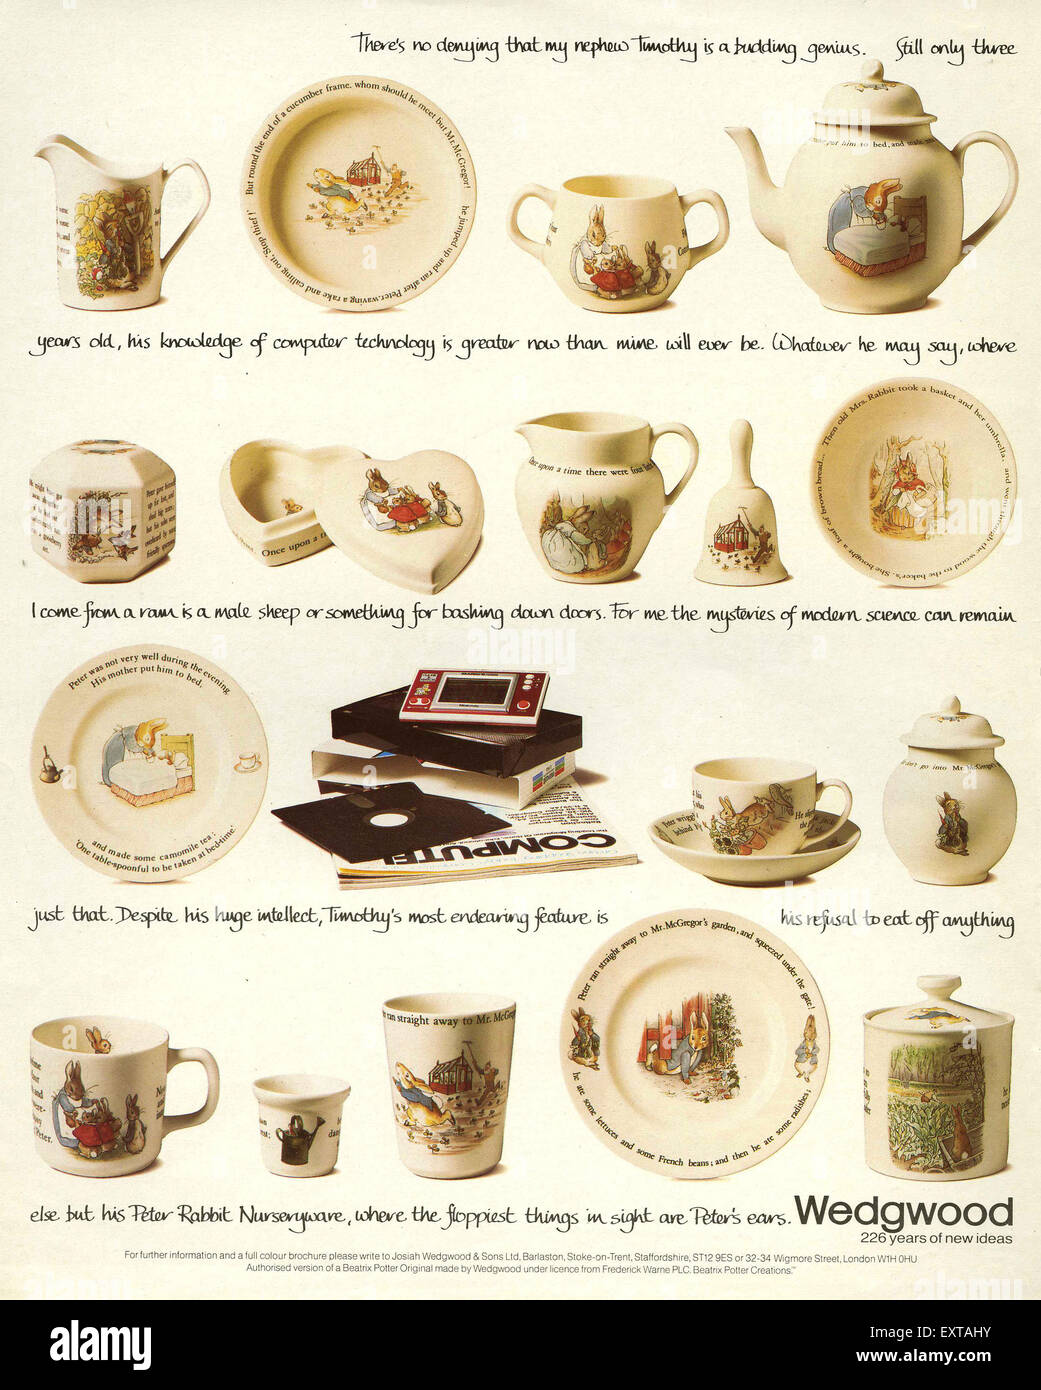 1980s UK Wedgwood Magazine Advert - Stock Image  sc 1 st  Alamy : wedgwood tableware uk - pezcame.com